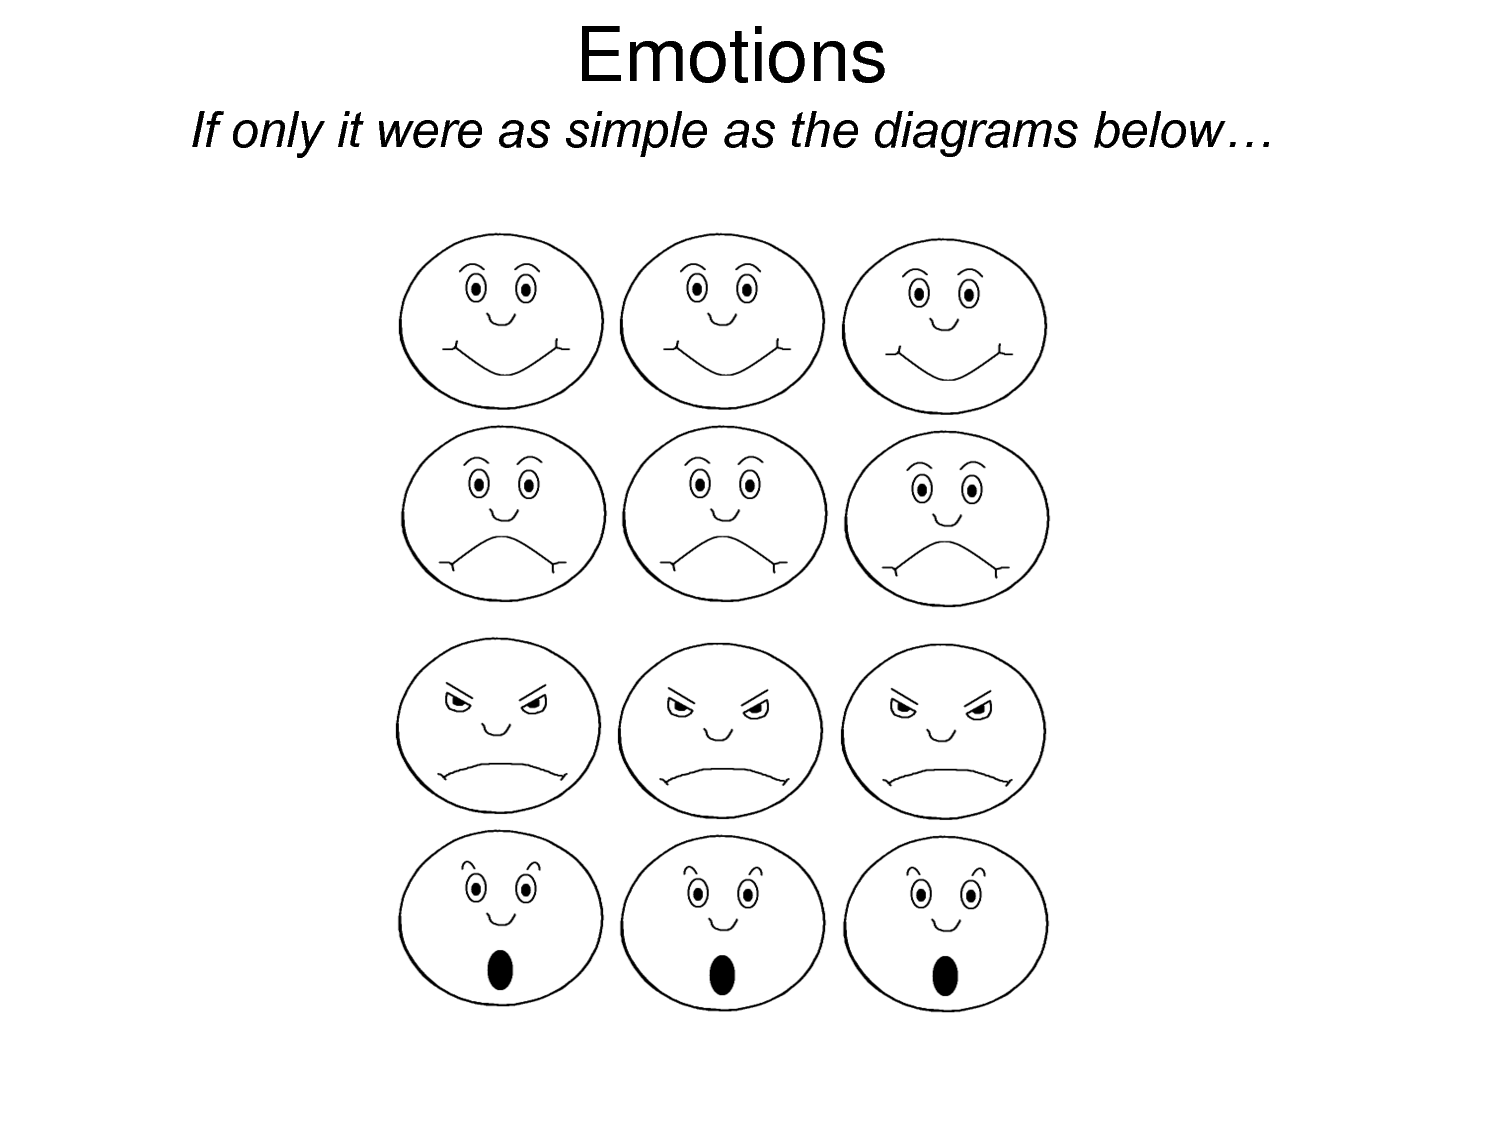 feelings chart coloring pages - photo#3